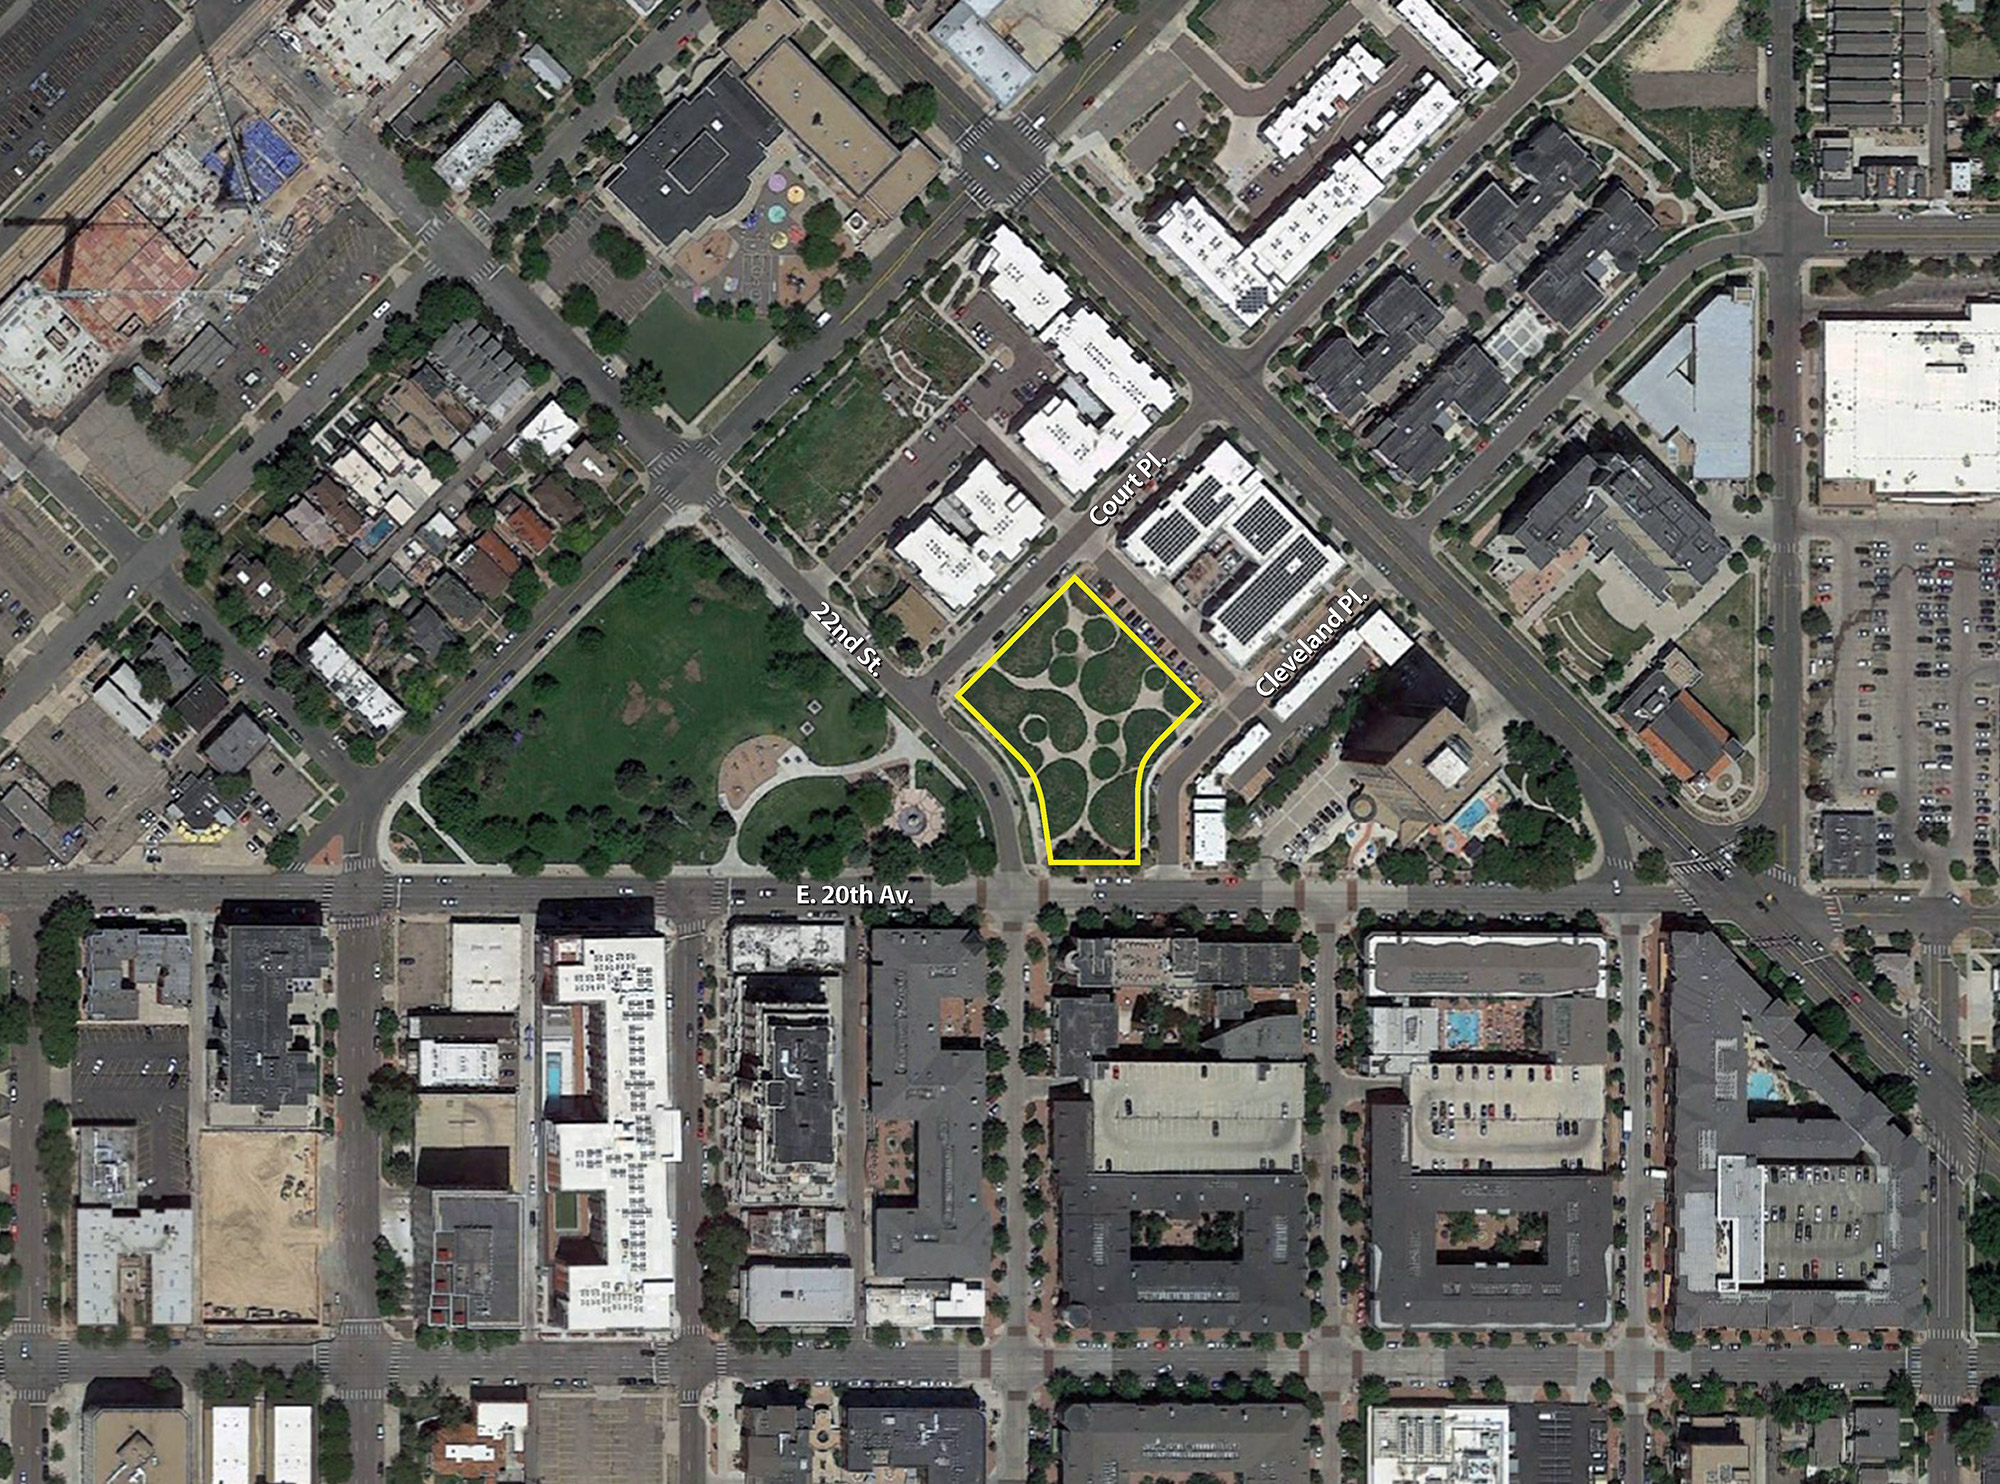 575 East 20th Avenue location, base aerial courtesy of Google Earth